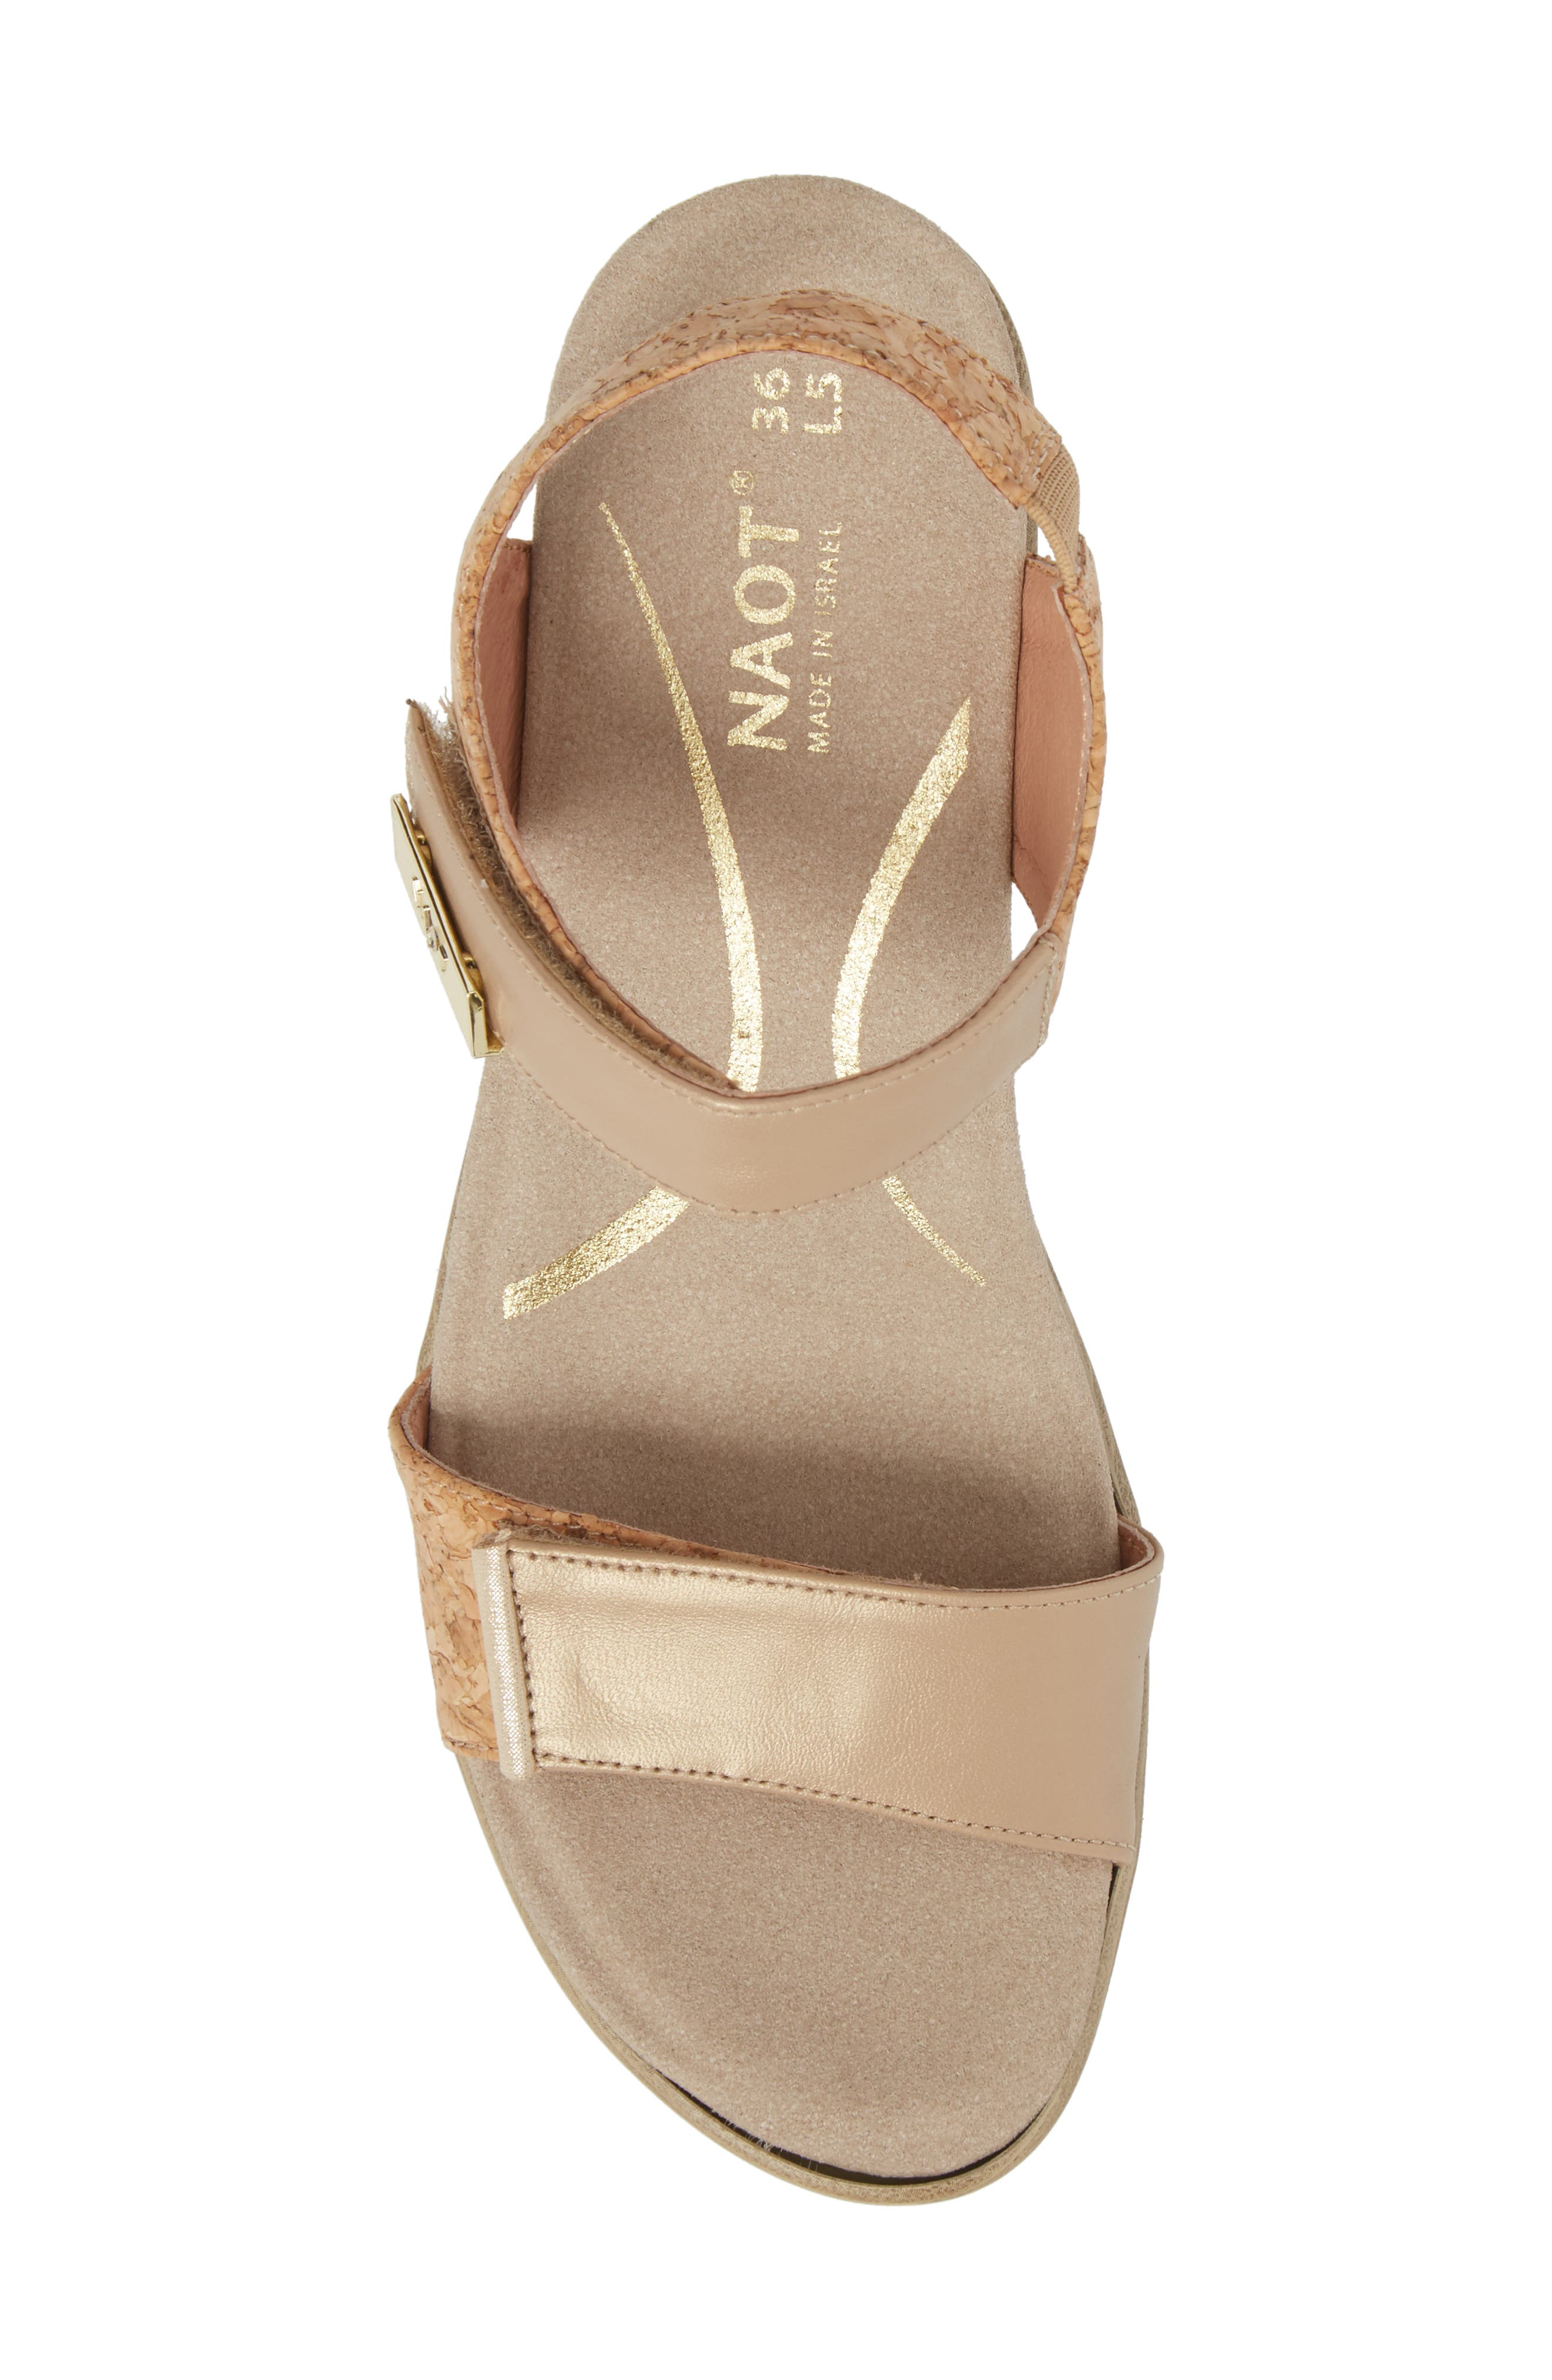 'Intact' Sandal,                             Alternate thumbnail 5, color,                             CHAMPAGNE LEATHER